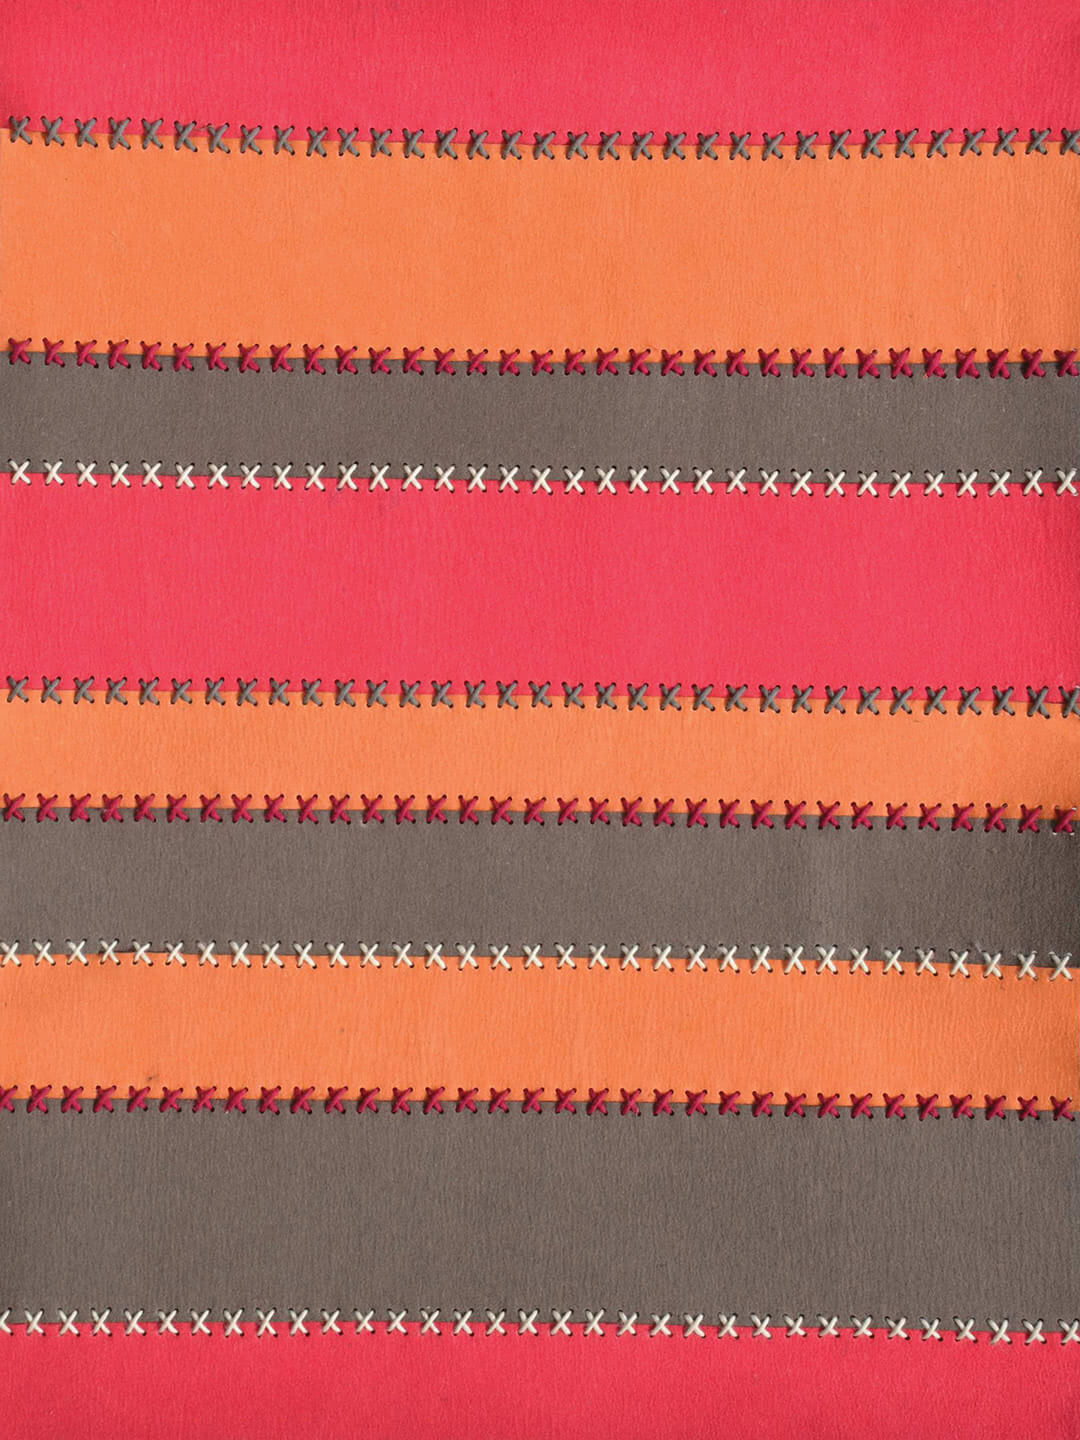 Belle Felted Wool rug in Orange, Pink and Grey.